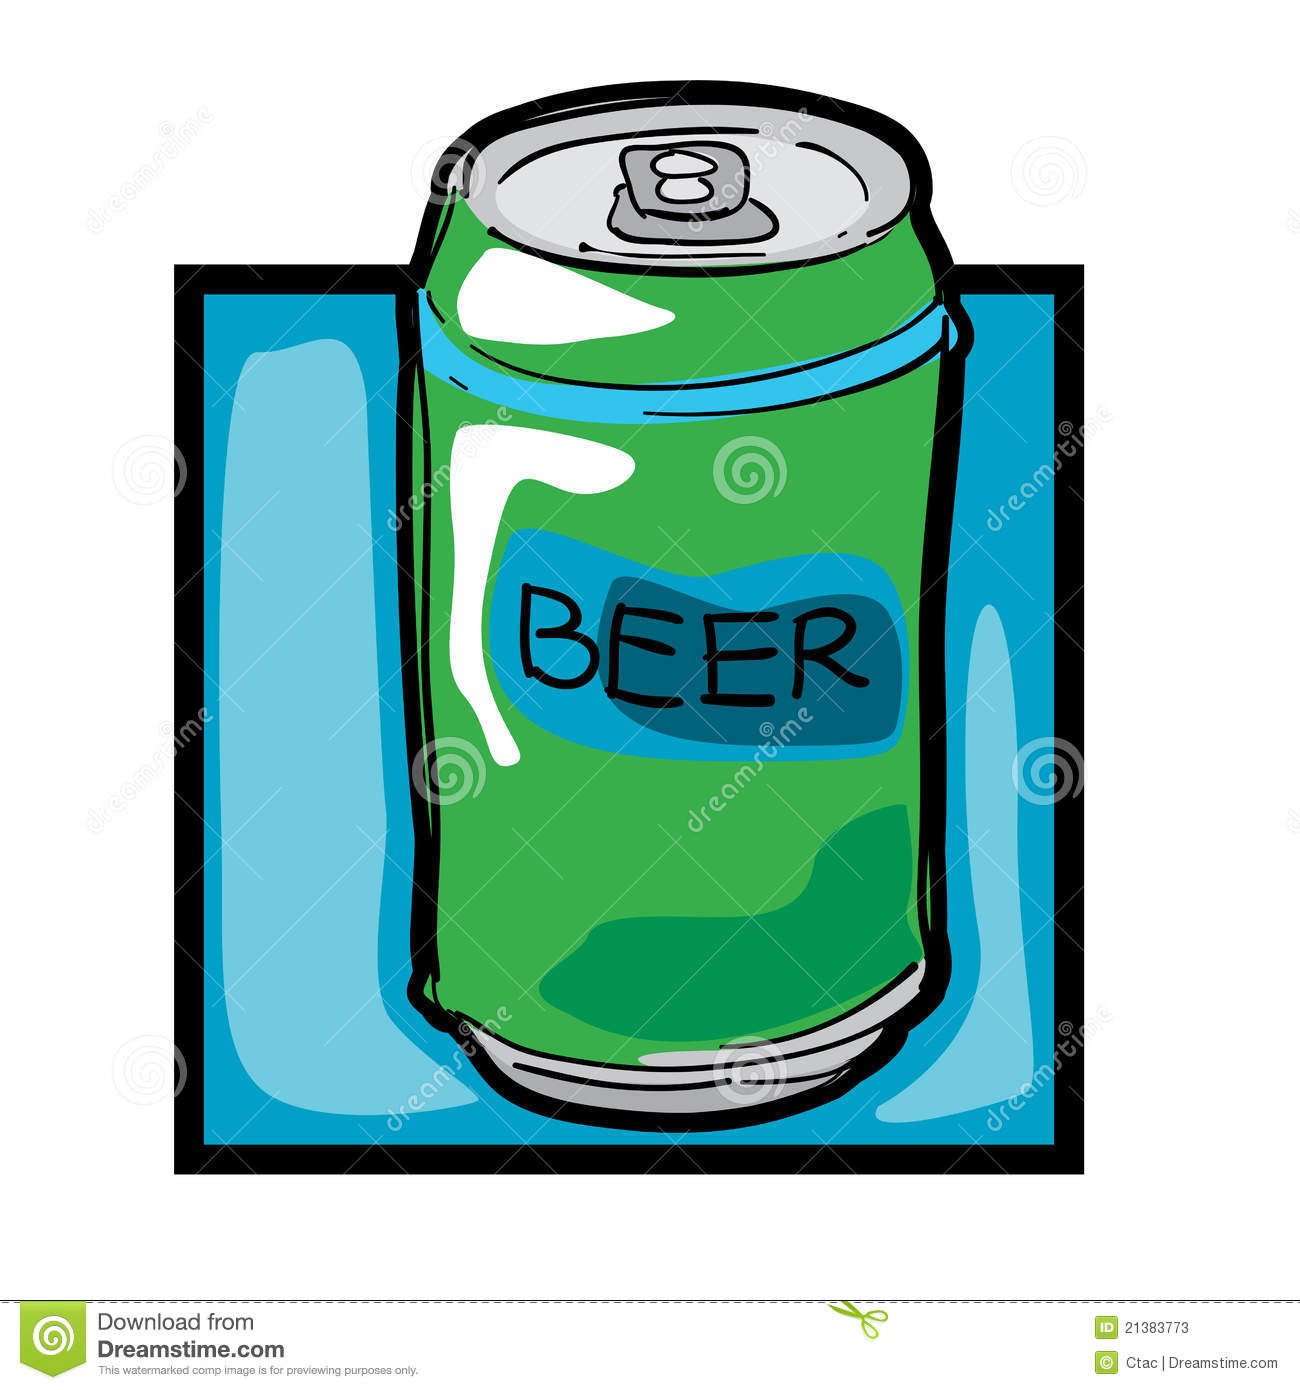 Clipart beer can.